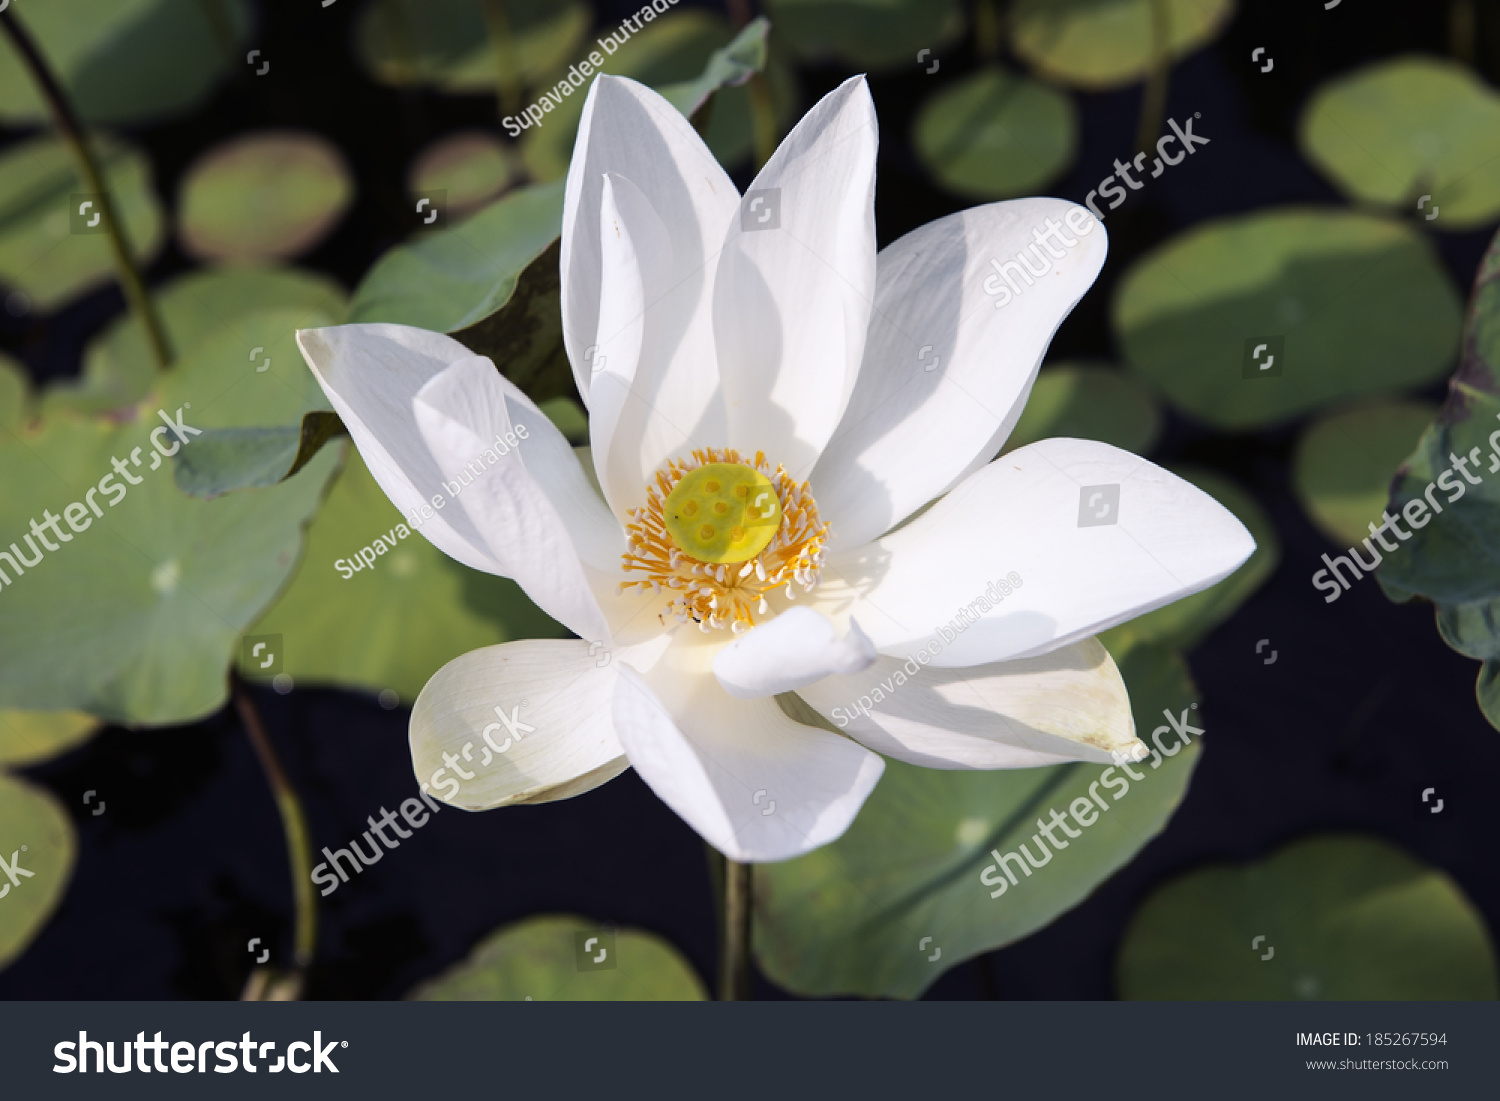 White blooming lotus flower blossom in exotic botanical garden ez id 185267594 izmirmasajfo